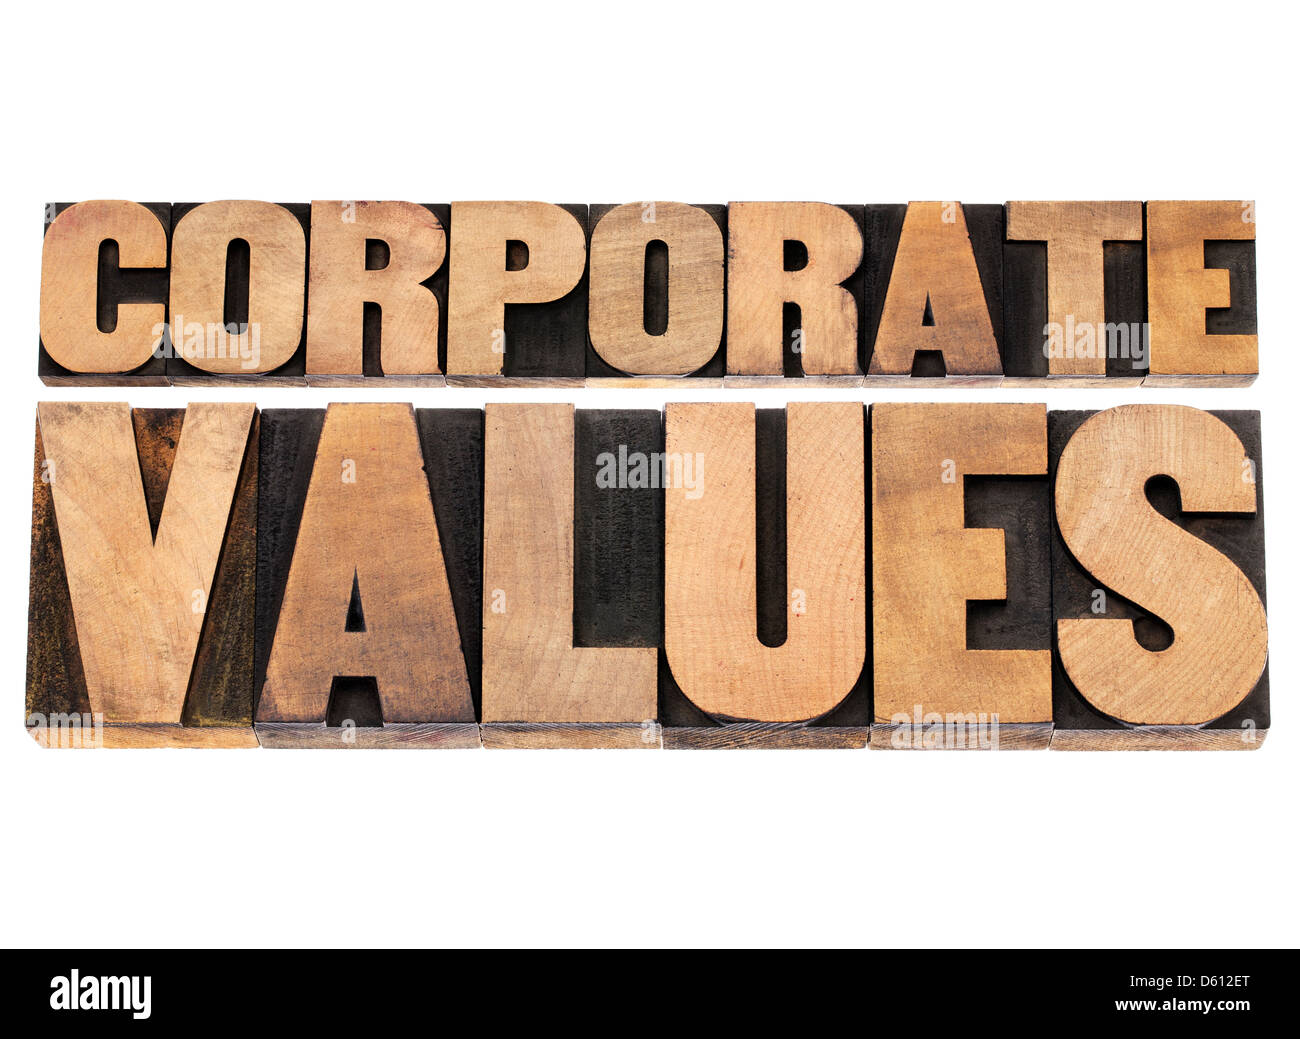 corporate values - business ethics and integrity concept - isolated text in vintage letterpress wood type printing - Stock Image